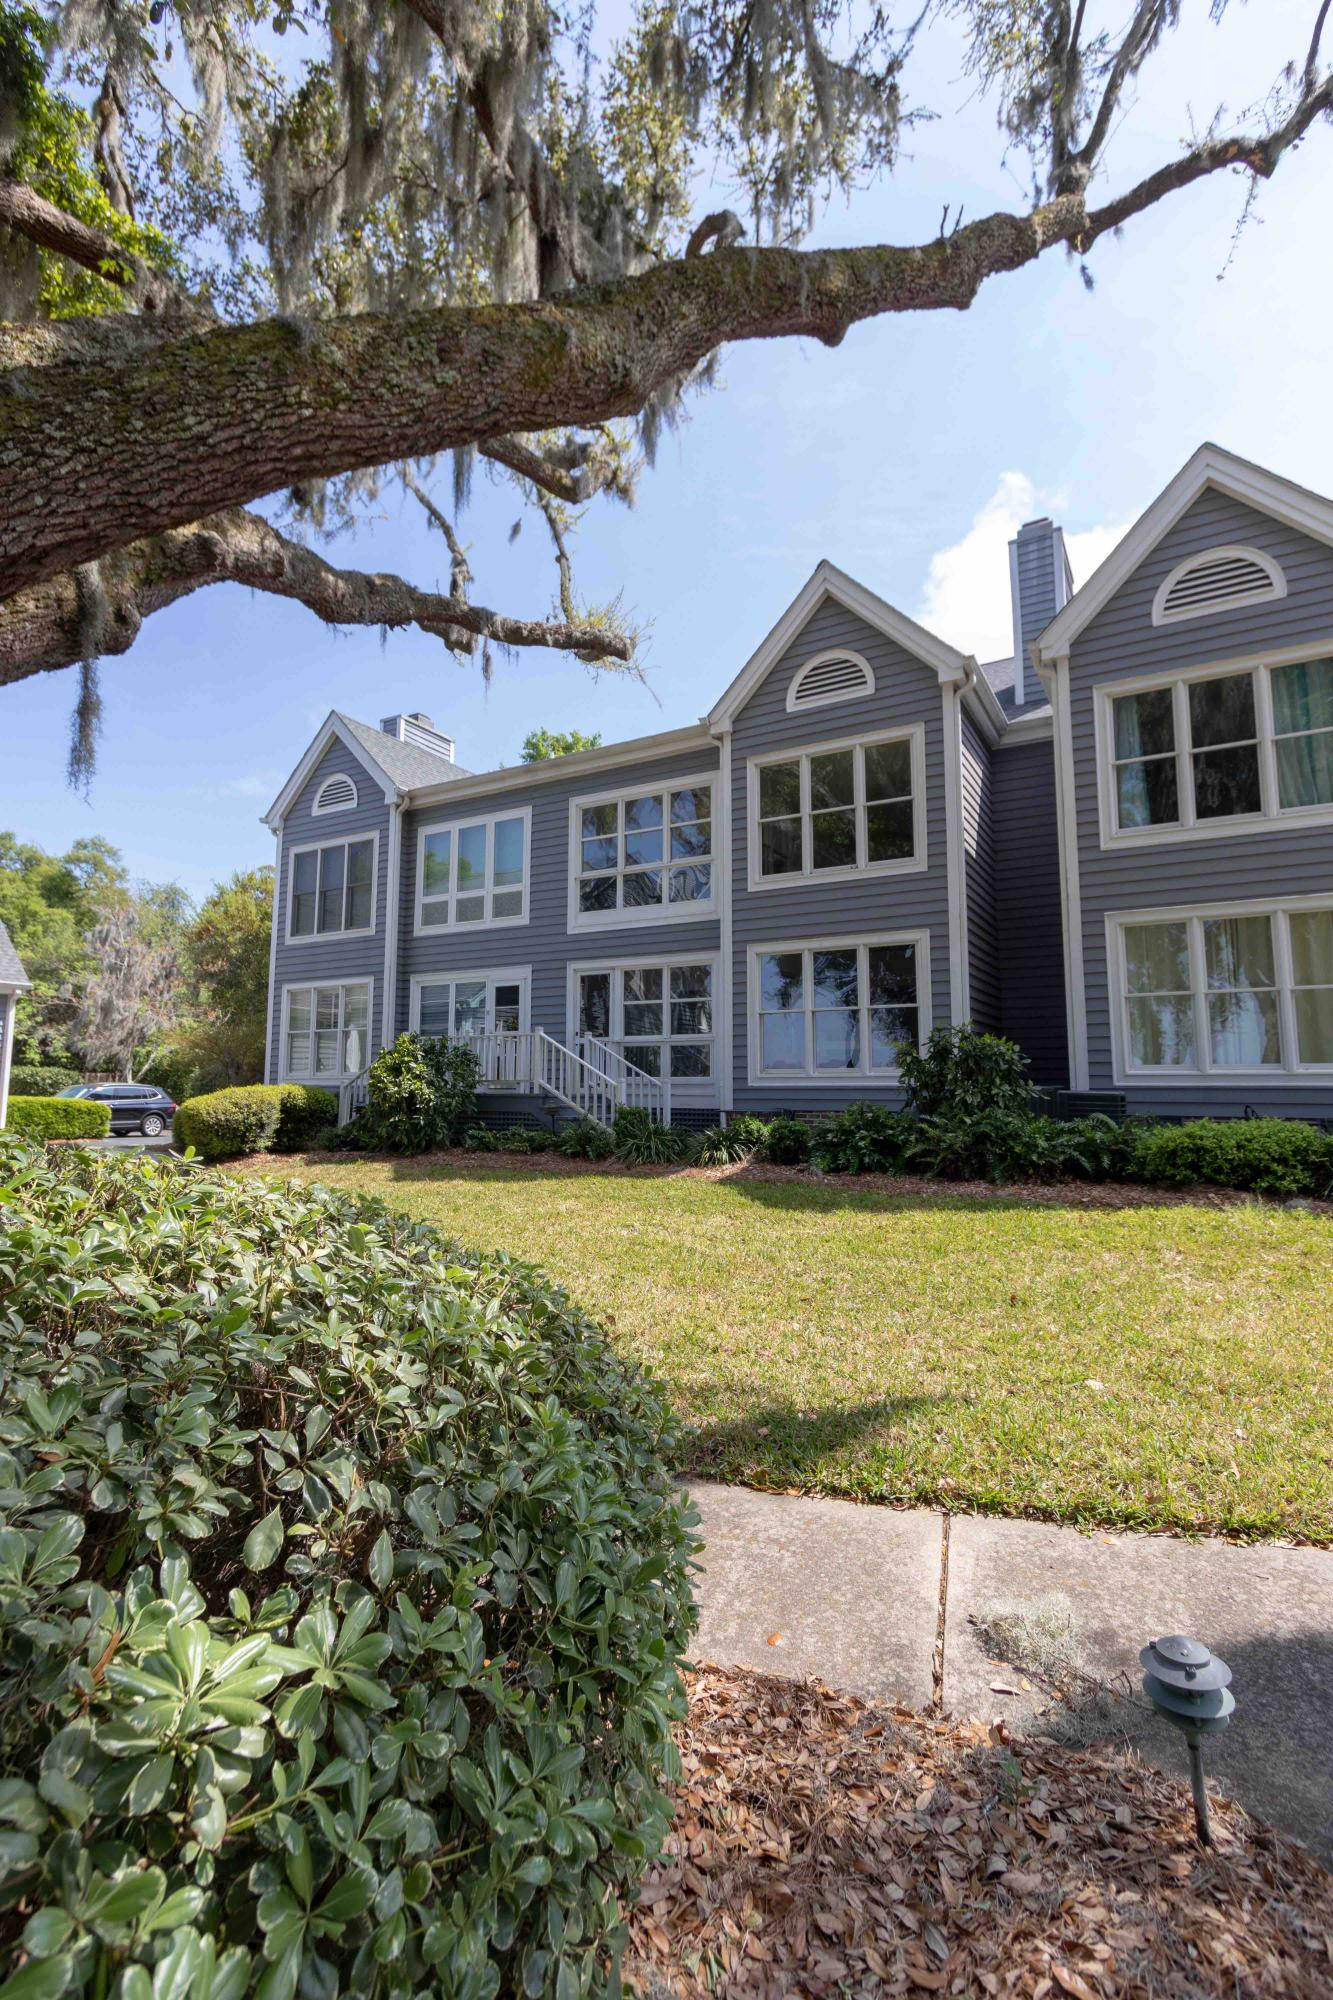 Waterfront Plantation Homes For Sale - 107 Waterfront Plantation, Charleston, SC - 27